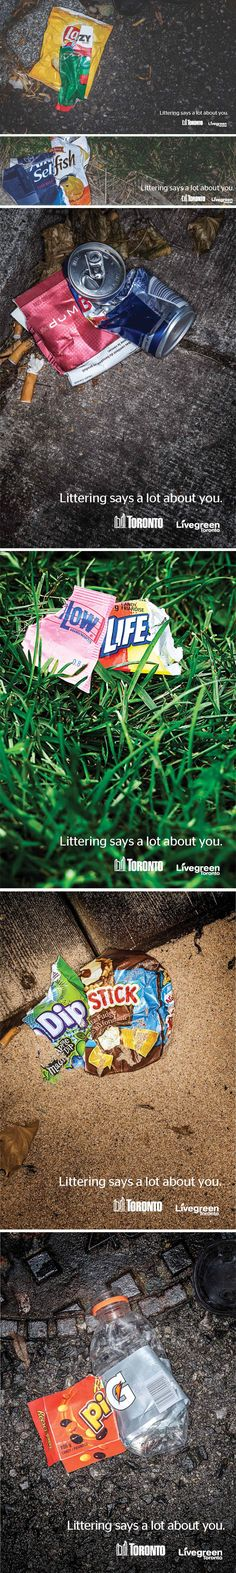 Littering Says A Lot About You - Don't be a slob.  My Mom once said she always leaves a picnic ground cleaner than when she found it.  Now I do it too.  If we all did, I'd have to work harder to live up to that standard.